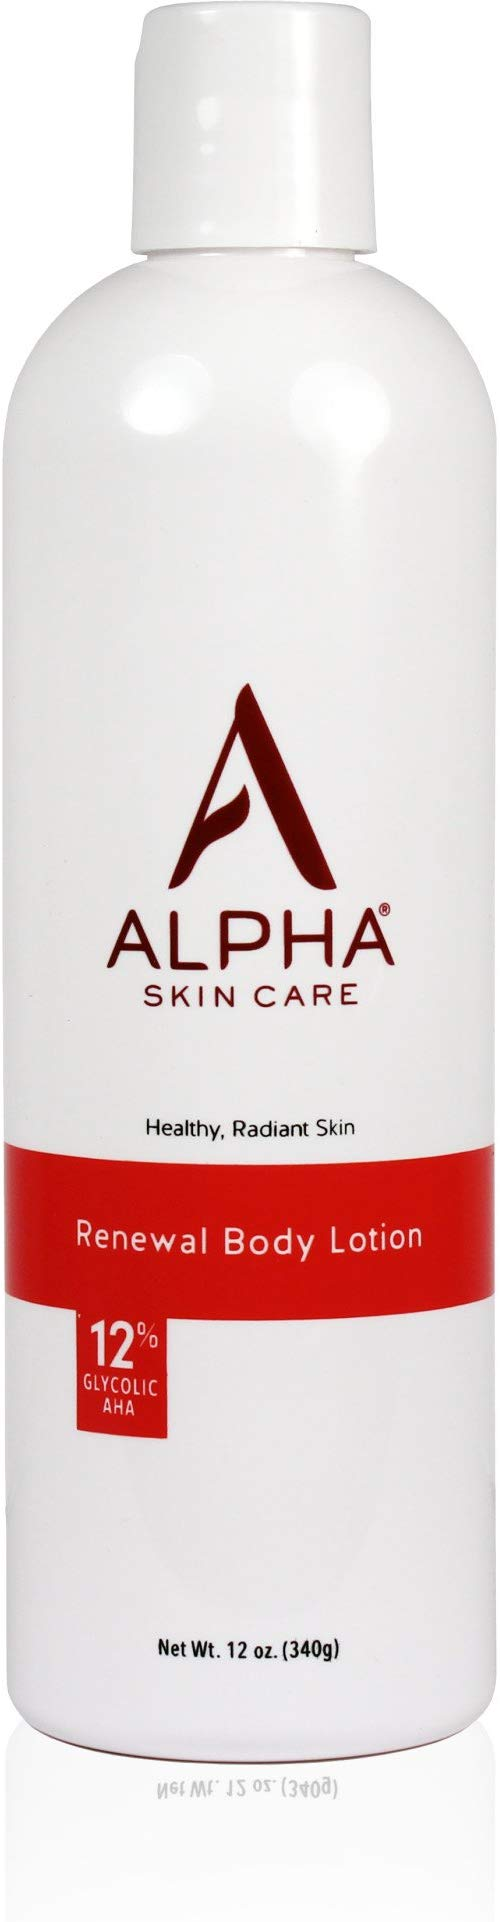 Alpha Skin Care Revitalizing Body Lotion With 12 Glycolic Aha New 12 Ounces Original Version Amazon Com Au B Skin Moisturizer Skin Care Healthy Radiant Skin